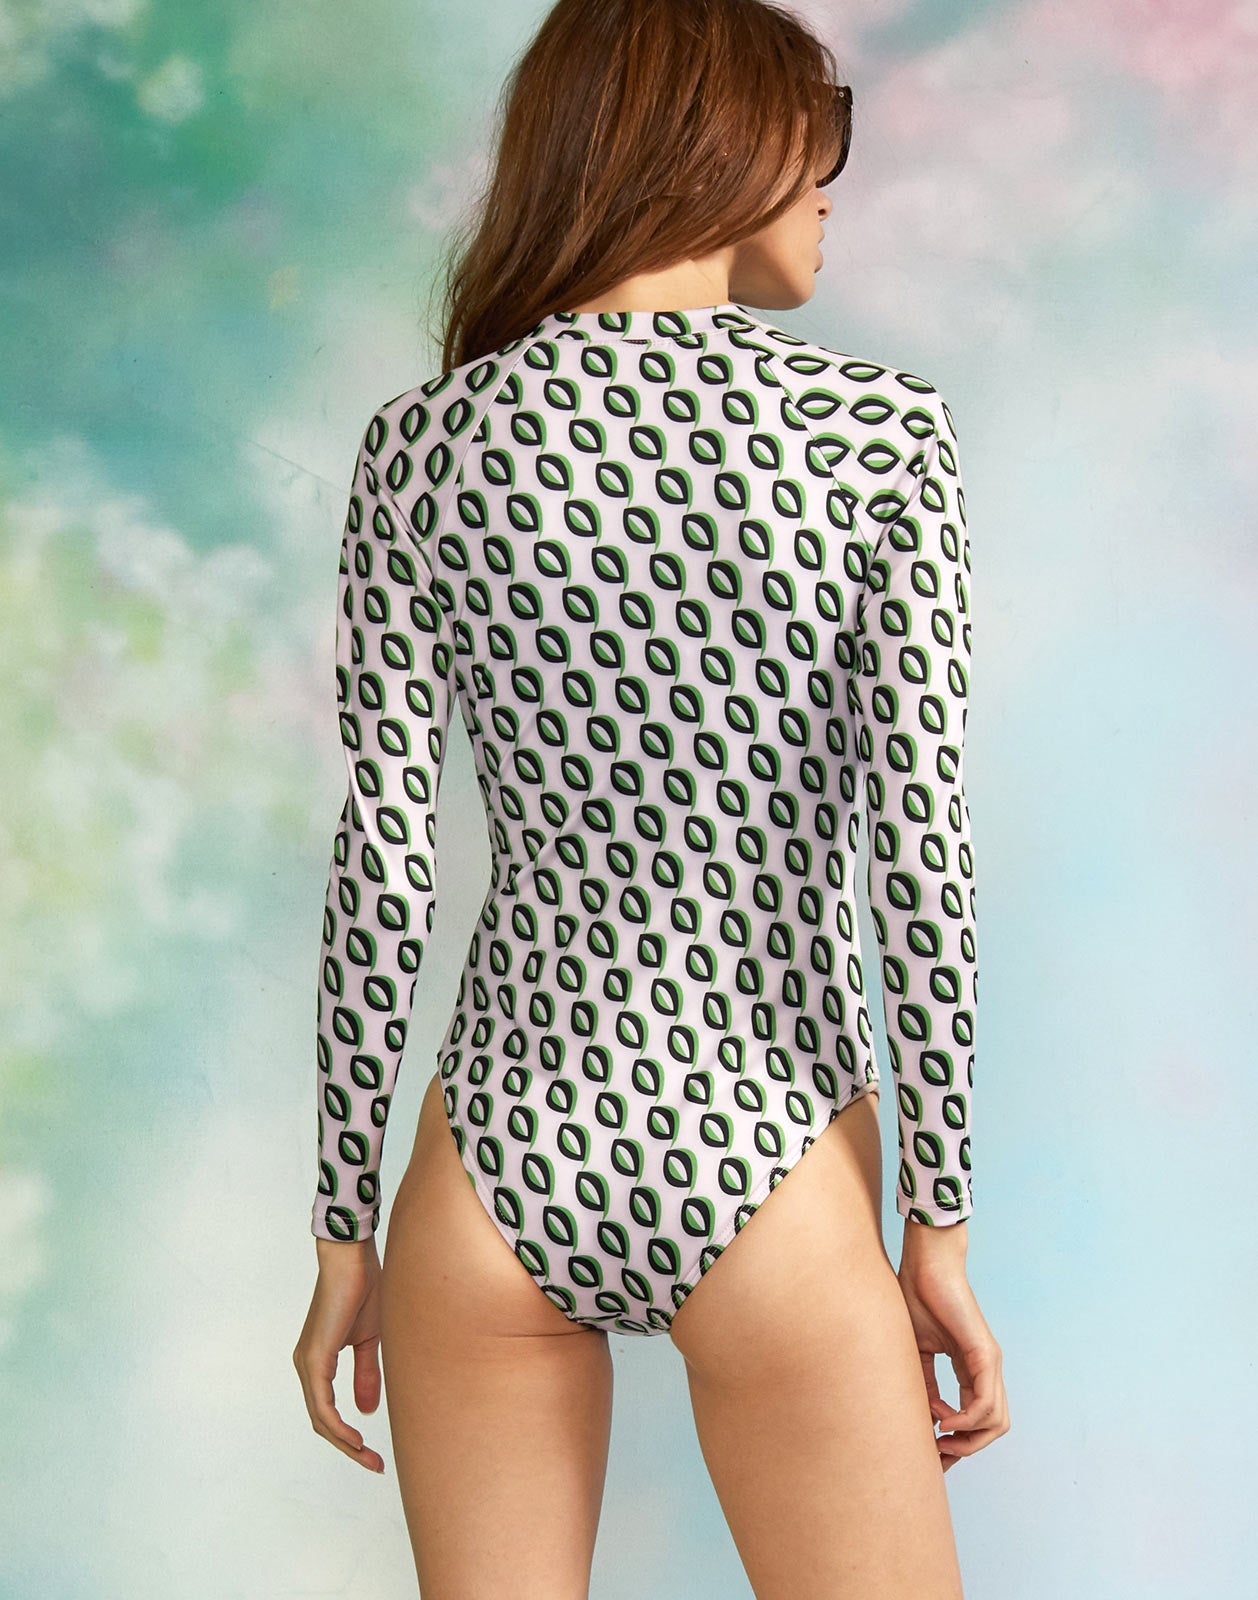 Back view of model wearing the Riva Surfsuit.